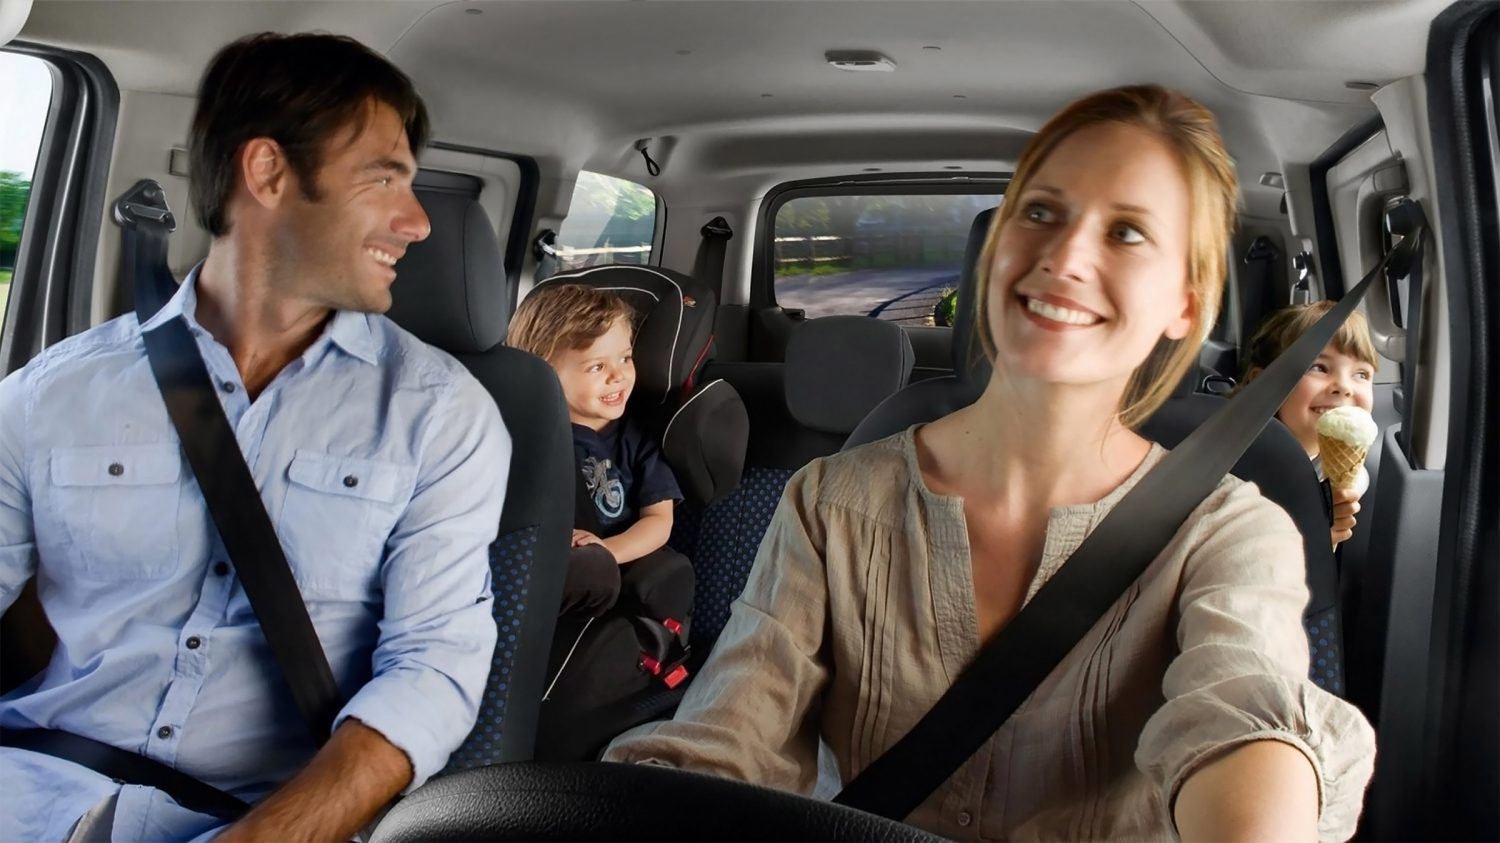 New Nissan e-NV200 EVALIA interior view with family in the car